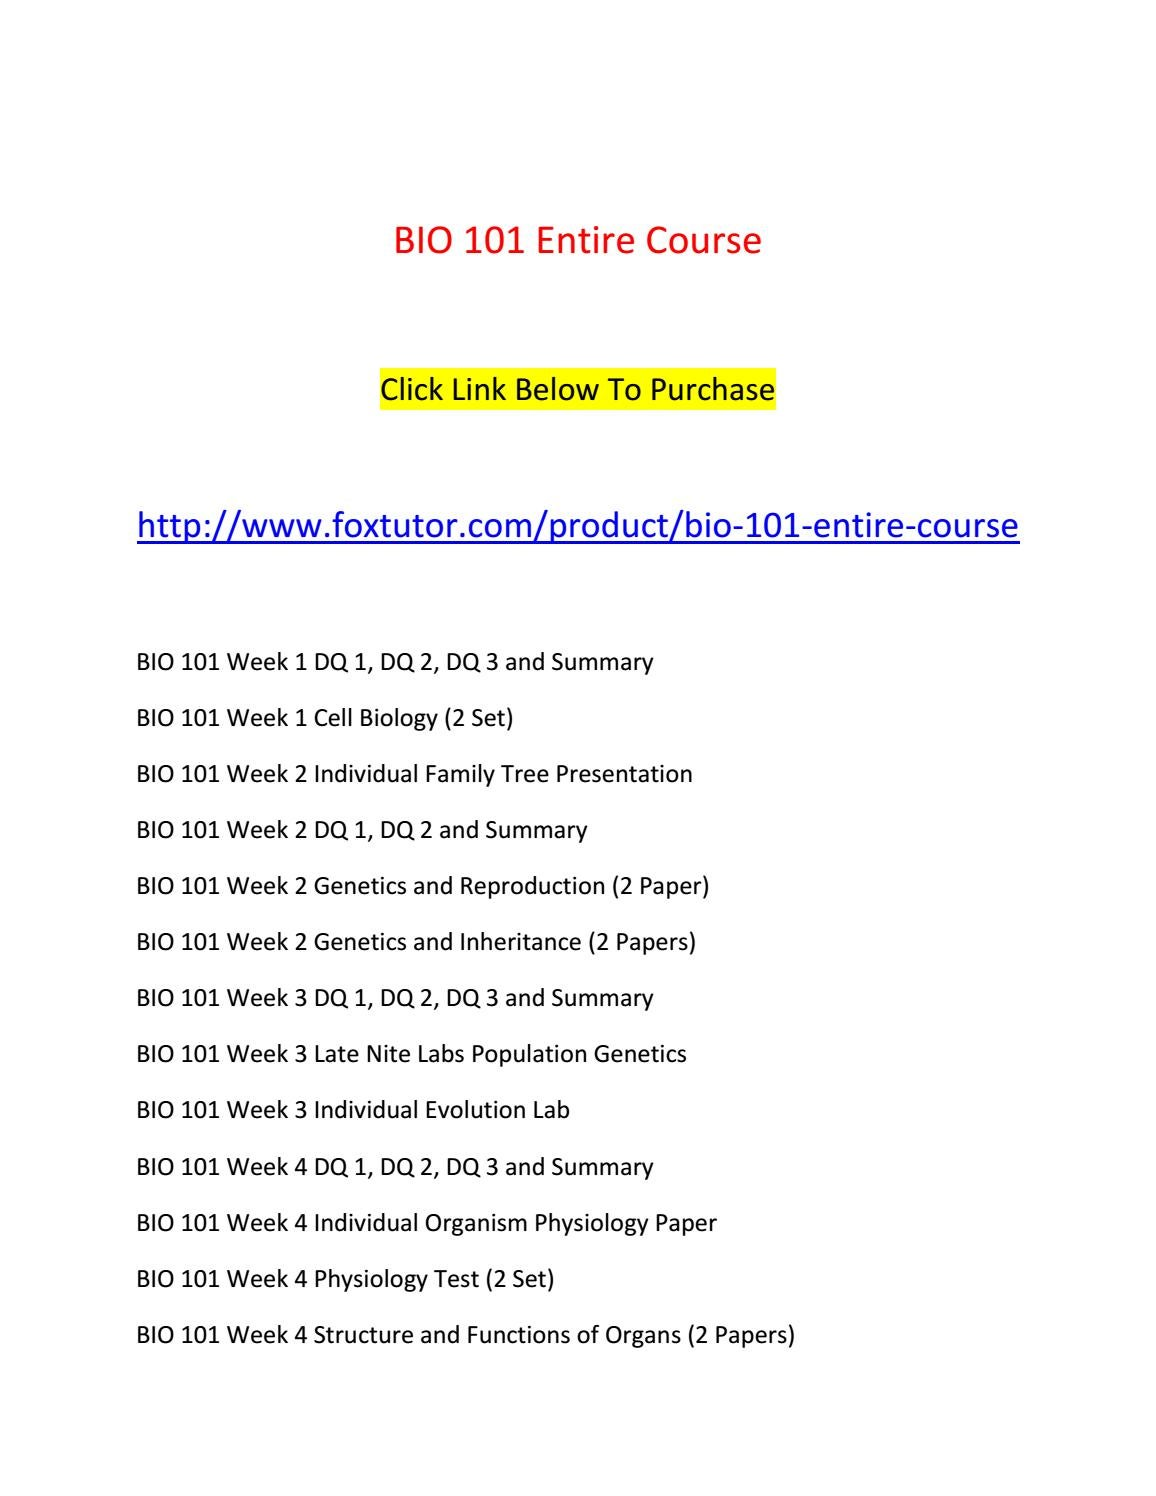 Bio 101 all assignments by bio101ft - issuu